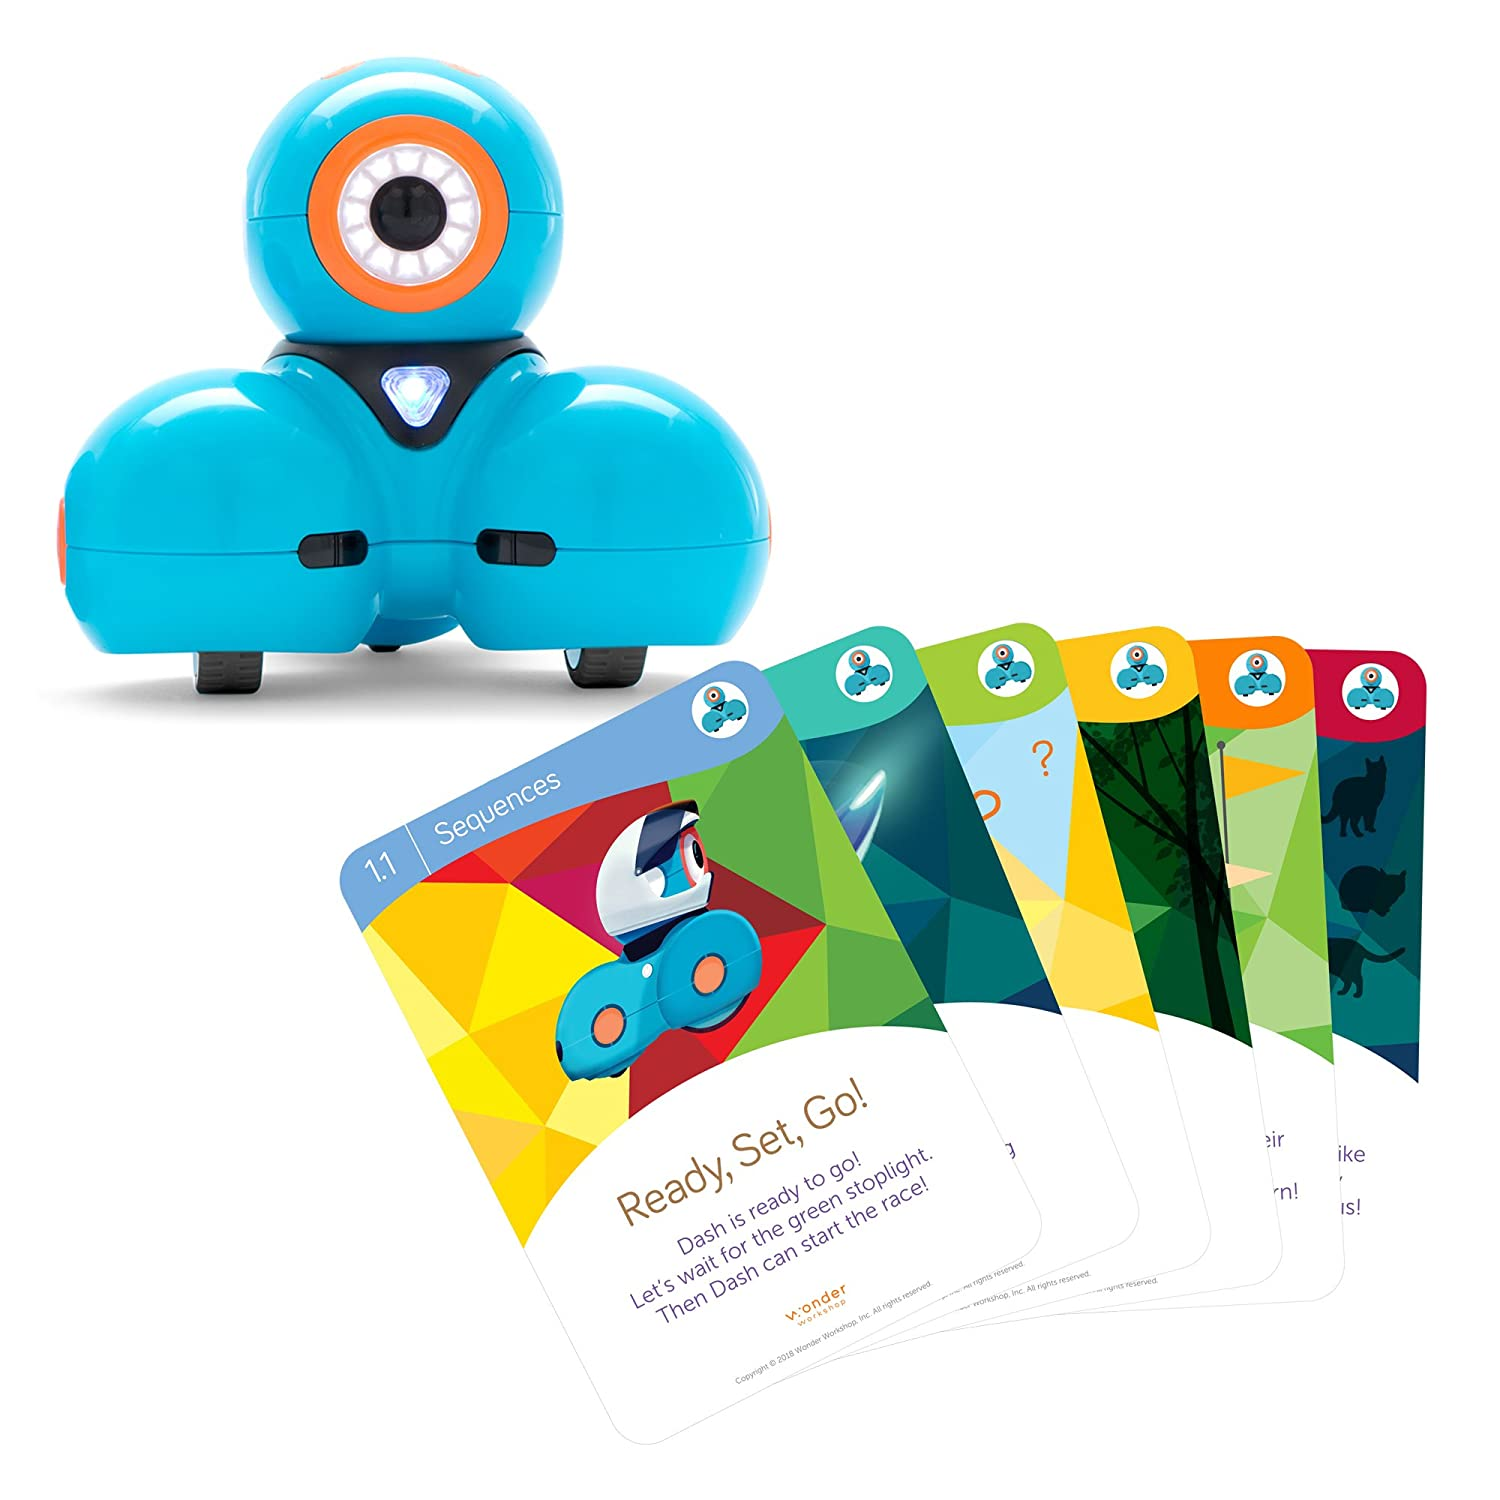 Wonder Workshop Dash Robot with Dash Challenge Cards Bundle - STEAM Learning Toys for girls and boys ages 6+ (Amazon Exclusive)